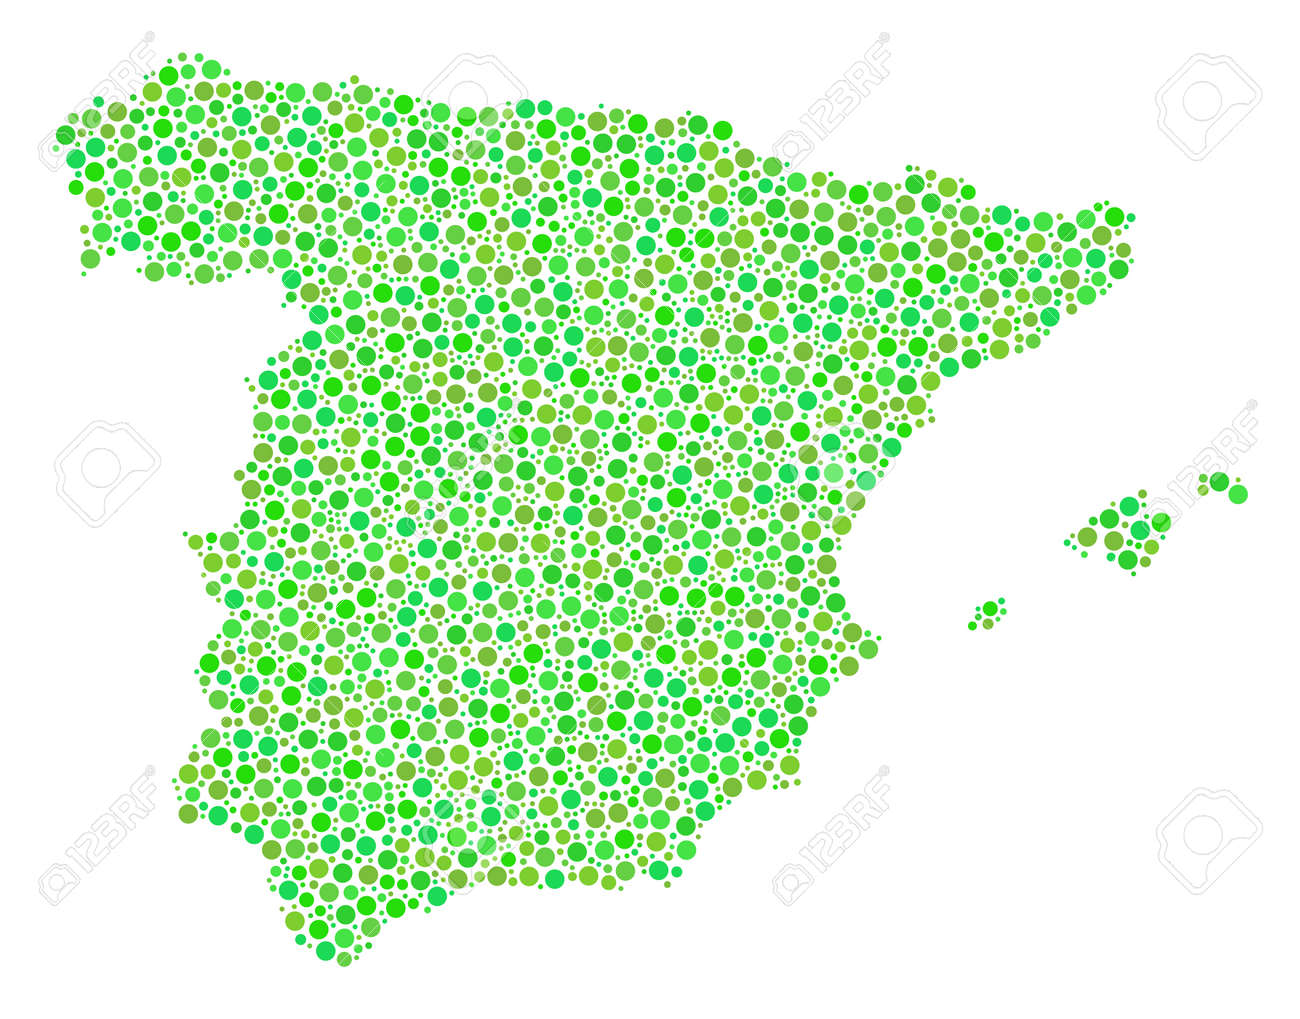 Small Map Of Spain.Spain Map Mosaic Of Small Circles In Different Sizes And Ecological